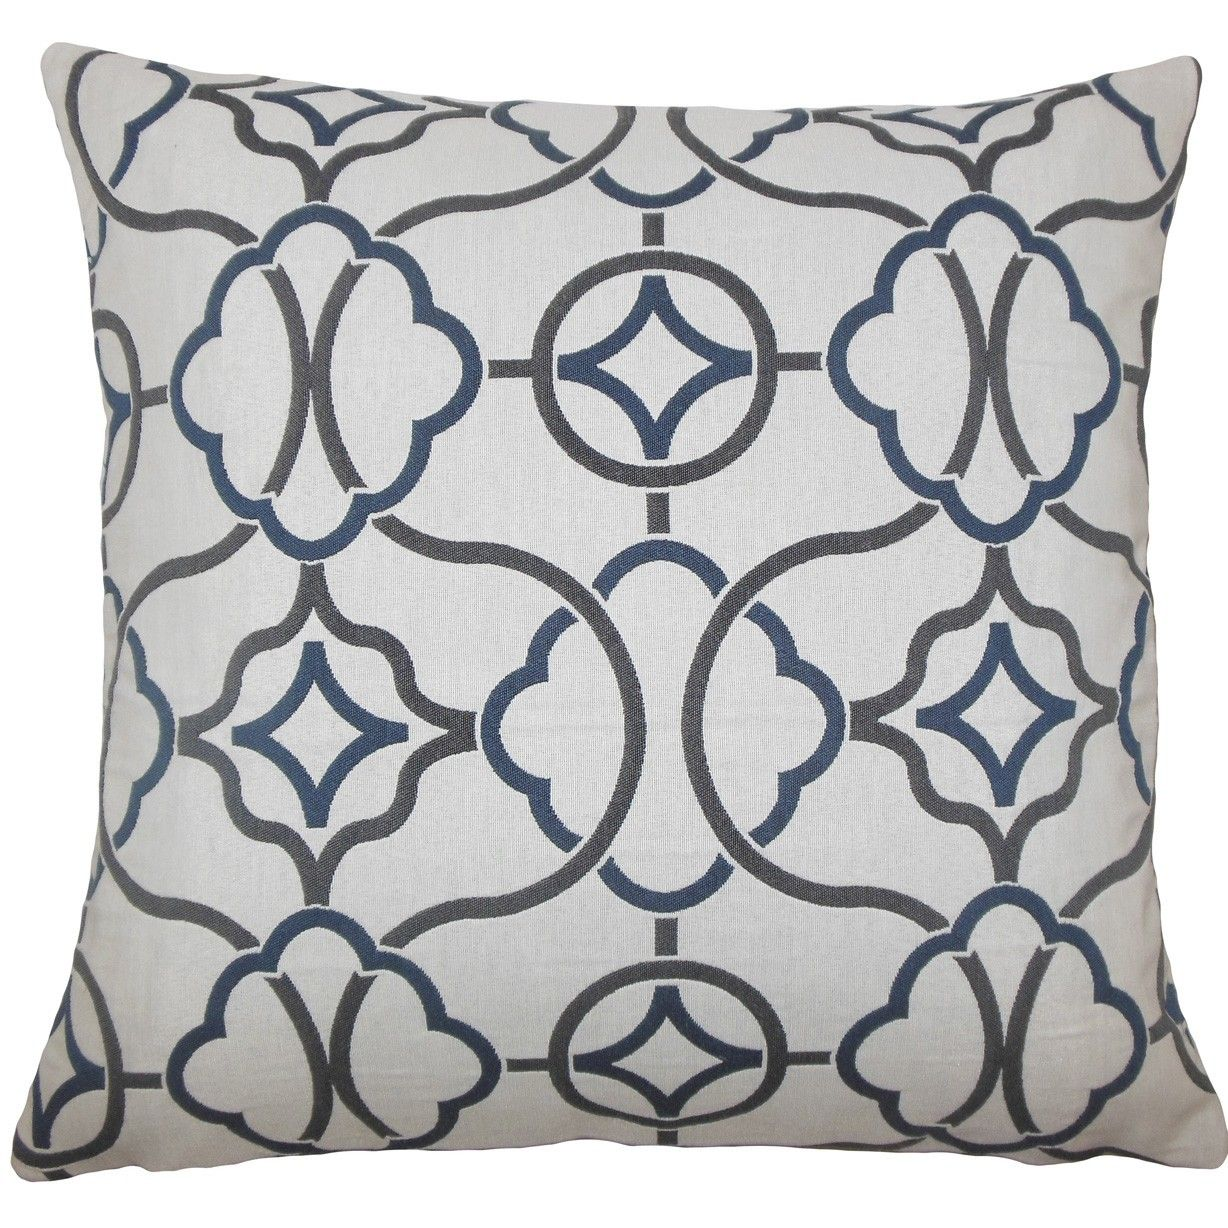 Fearghus Geometric Throw Pillow